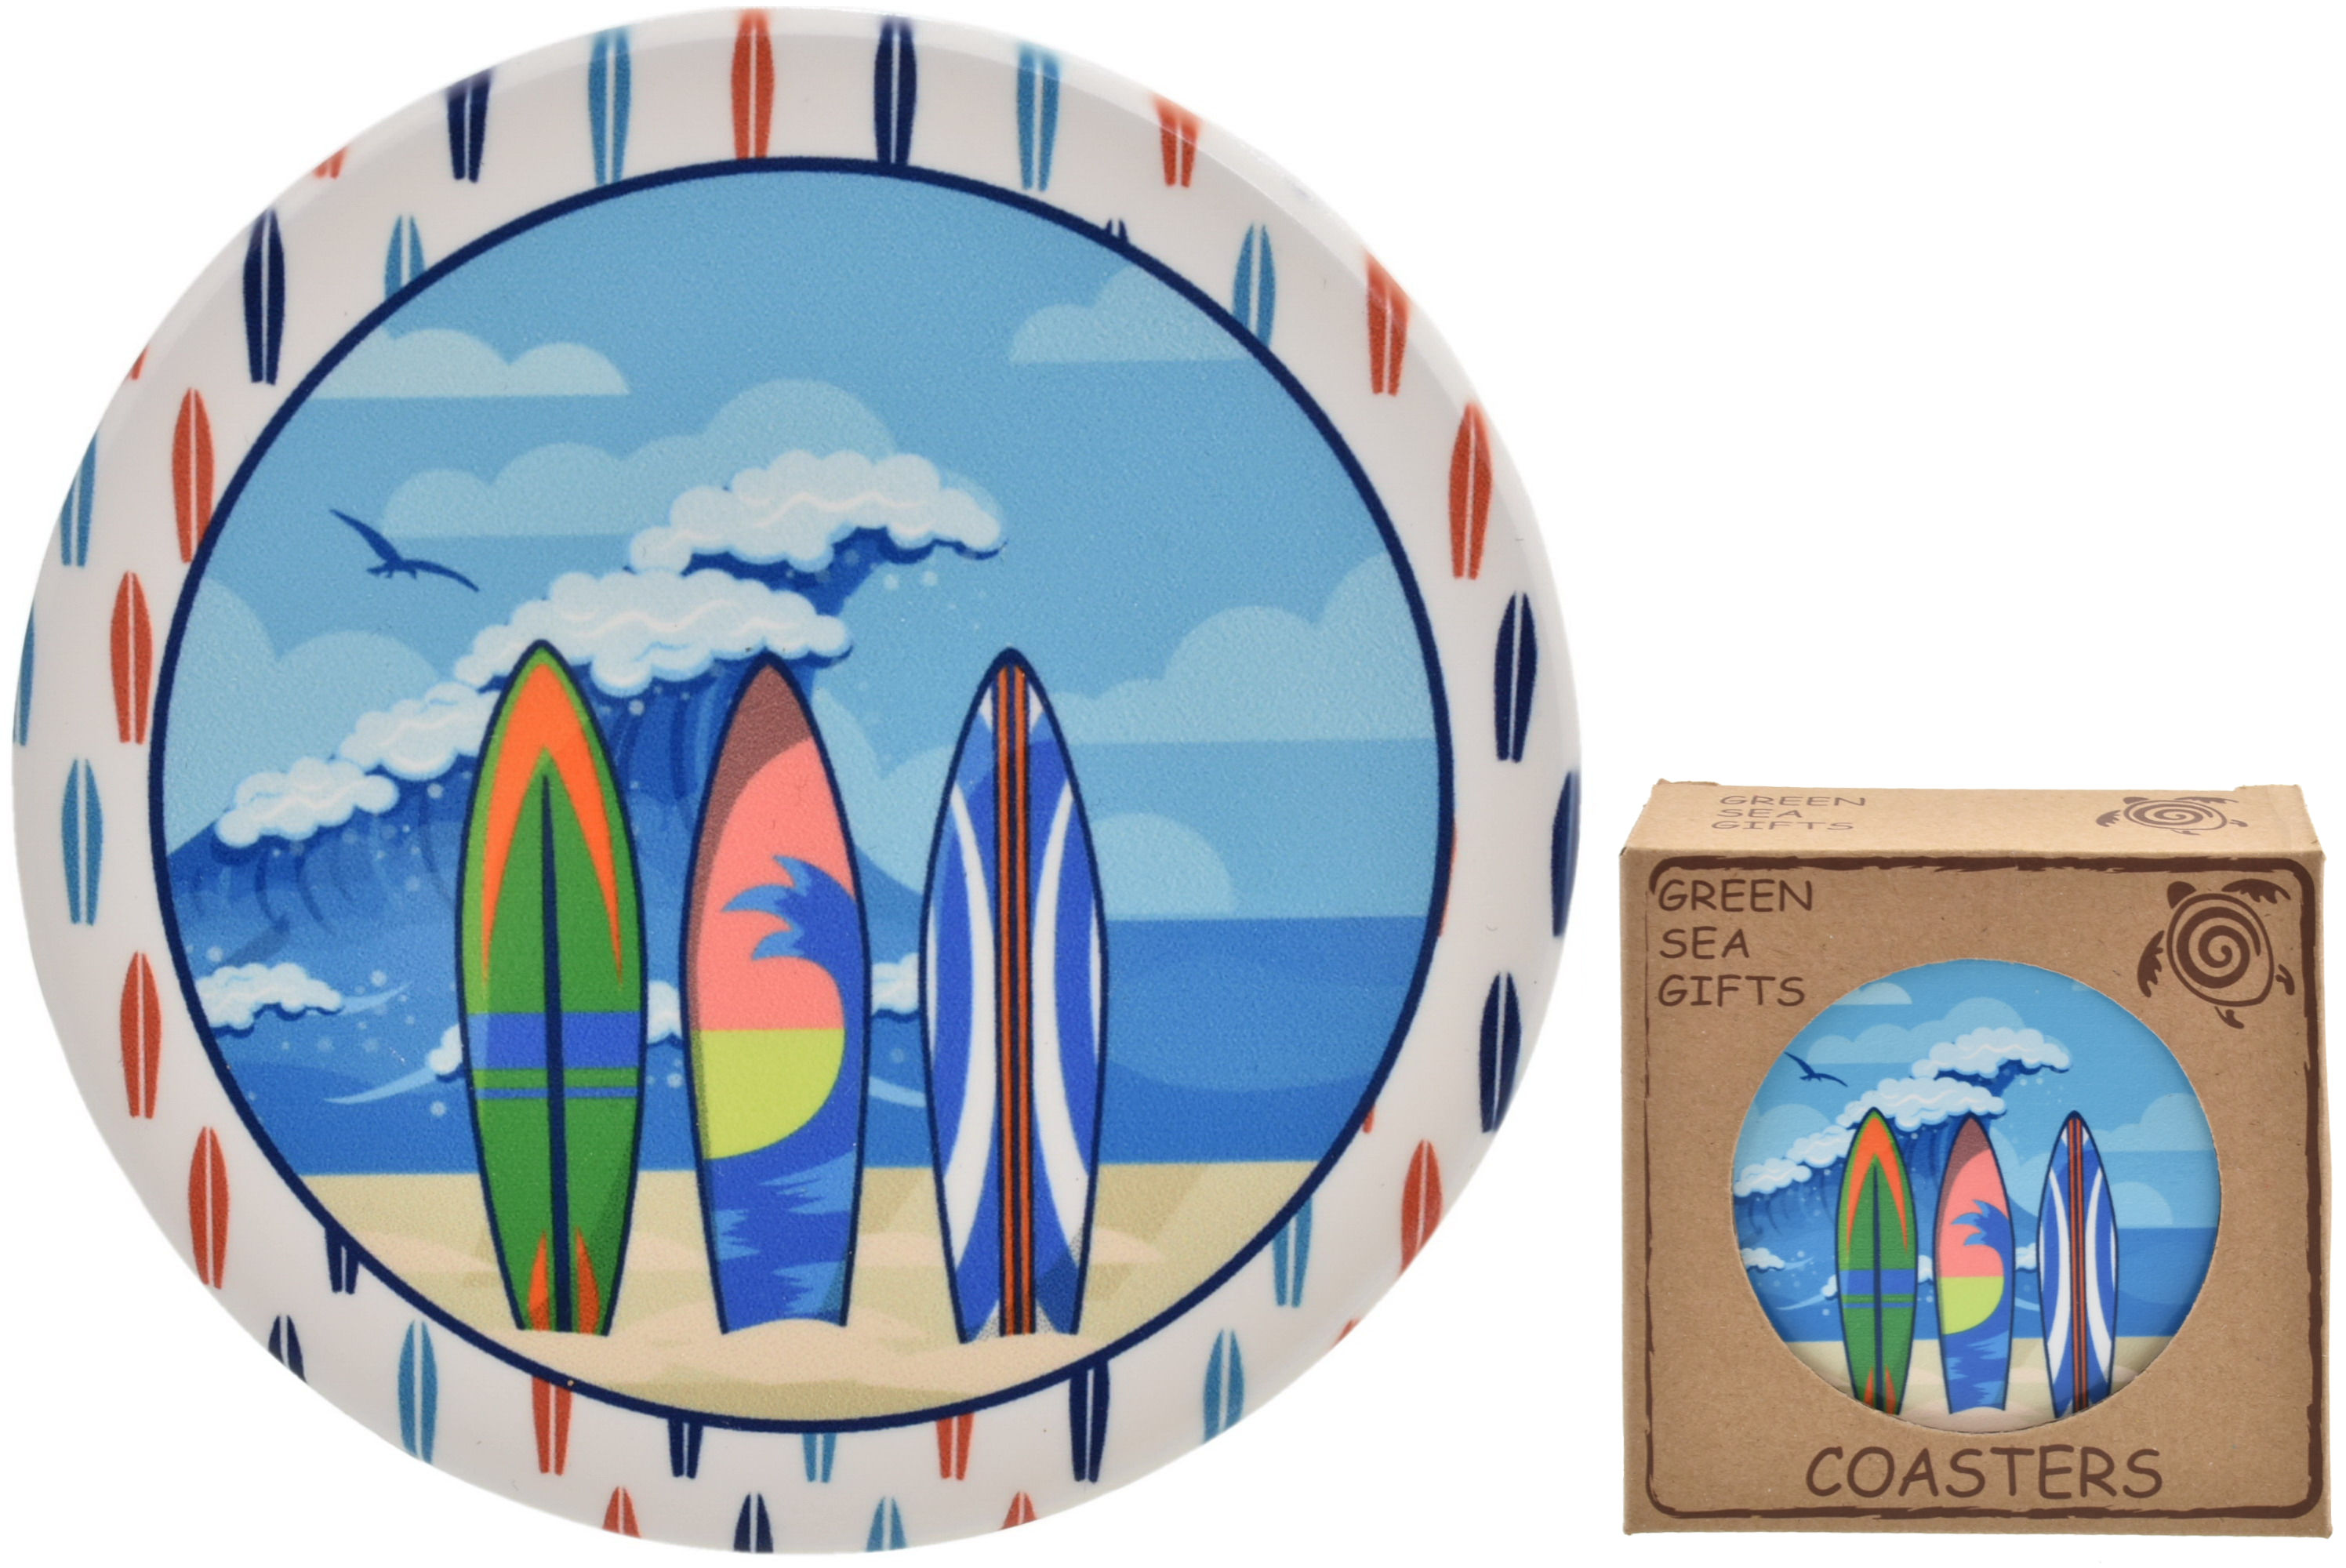 10cm Surfboards Design Coaster Set Of 4 In Gift Box